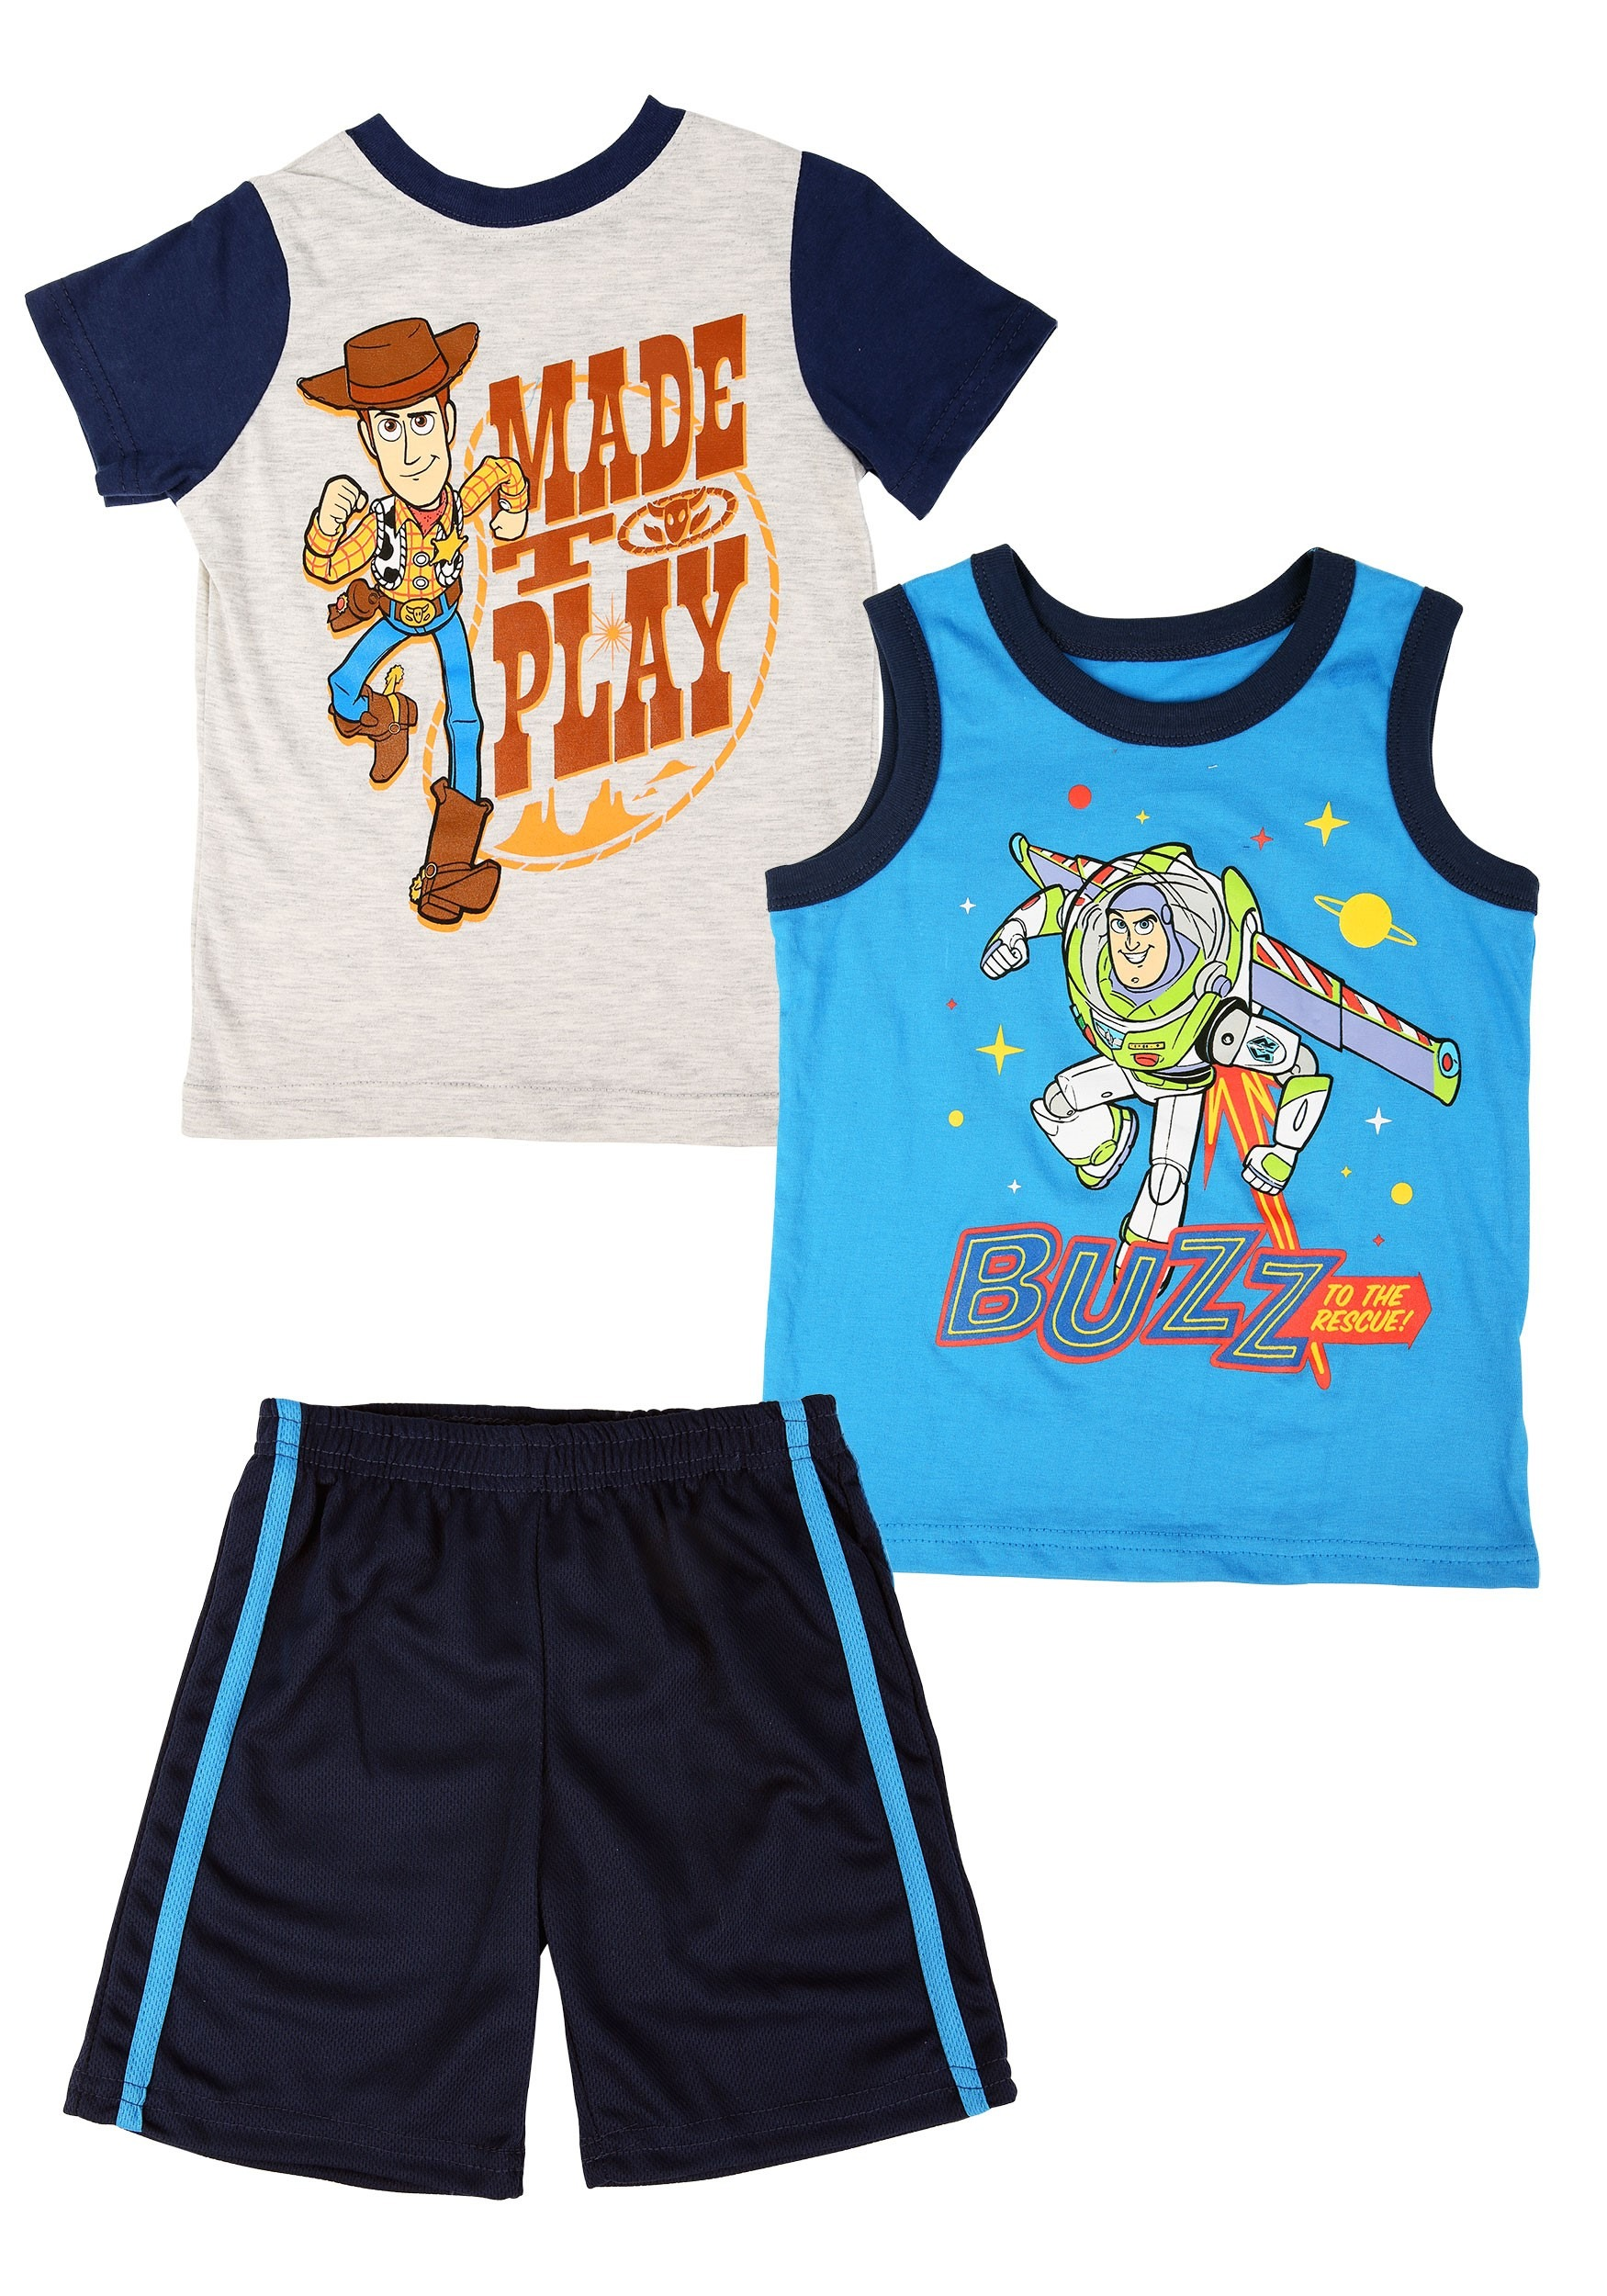 3pc Toy Story Knit Tank, Tee and Short Set